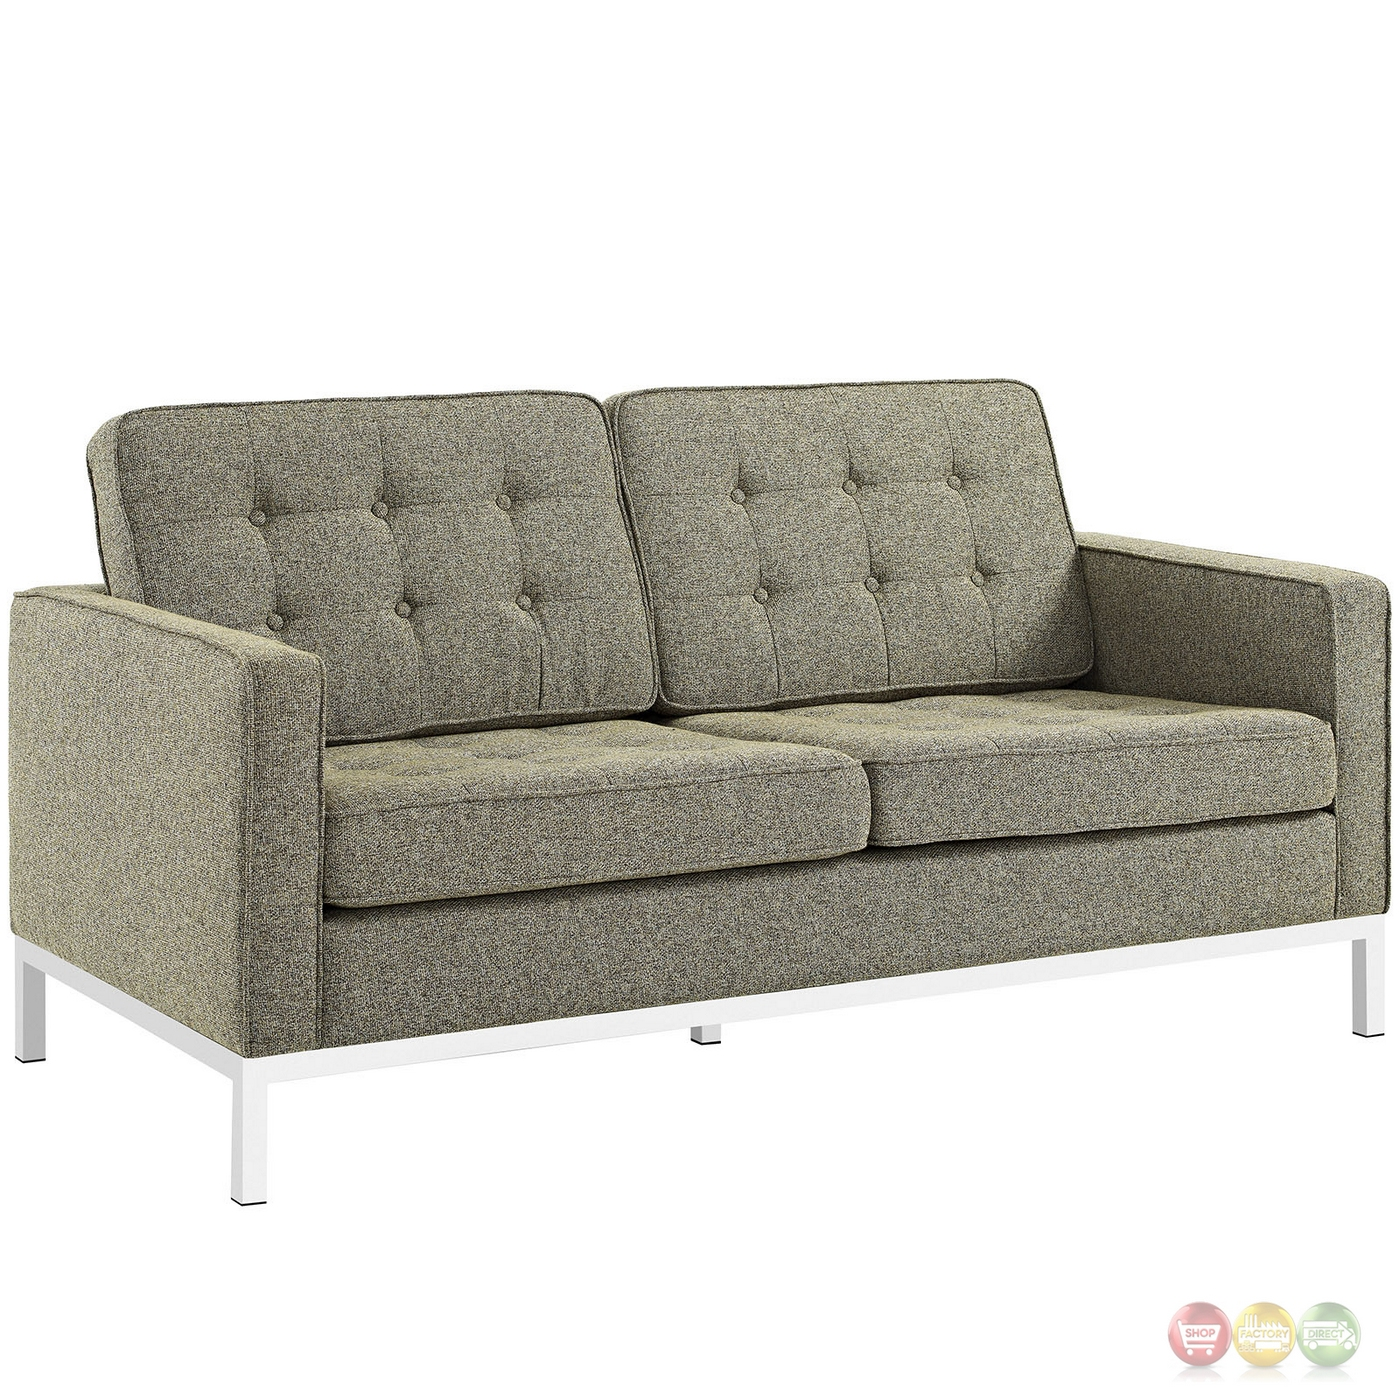 Loft Modern 2pc Upholstered Button tufted Sofa amp Loveseat  : loft modern 2pc upholstered button tufted sofa loveseat set oatmeal 5 from shopfactorydirect.com size 1400 x 1400 jpeg 811kB